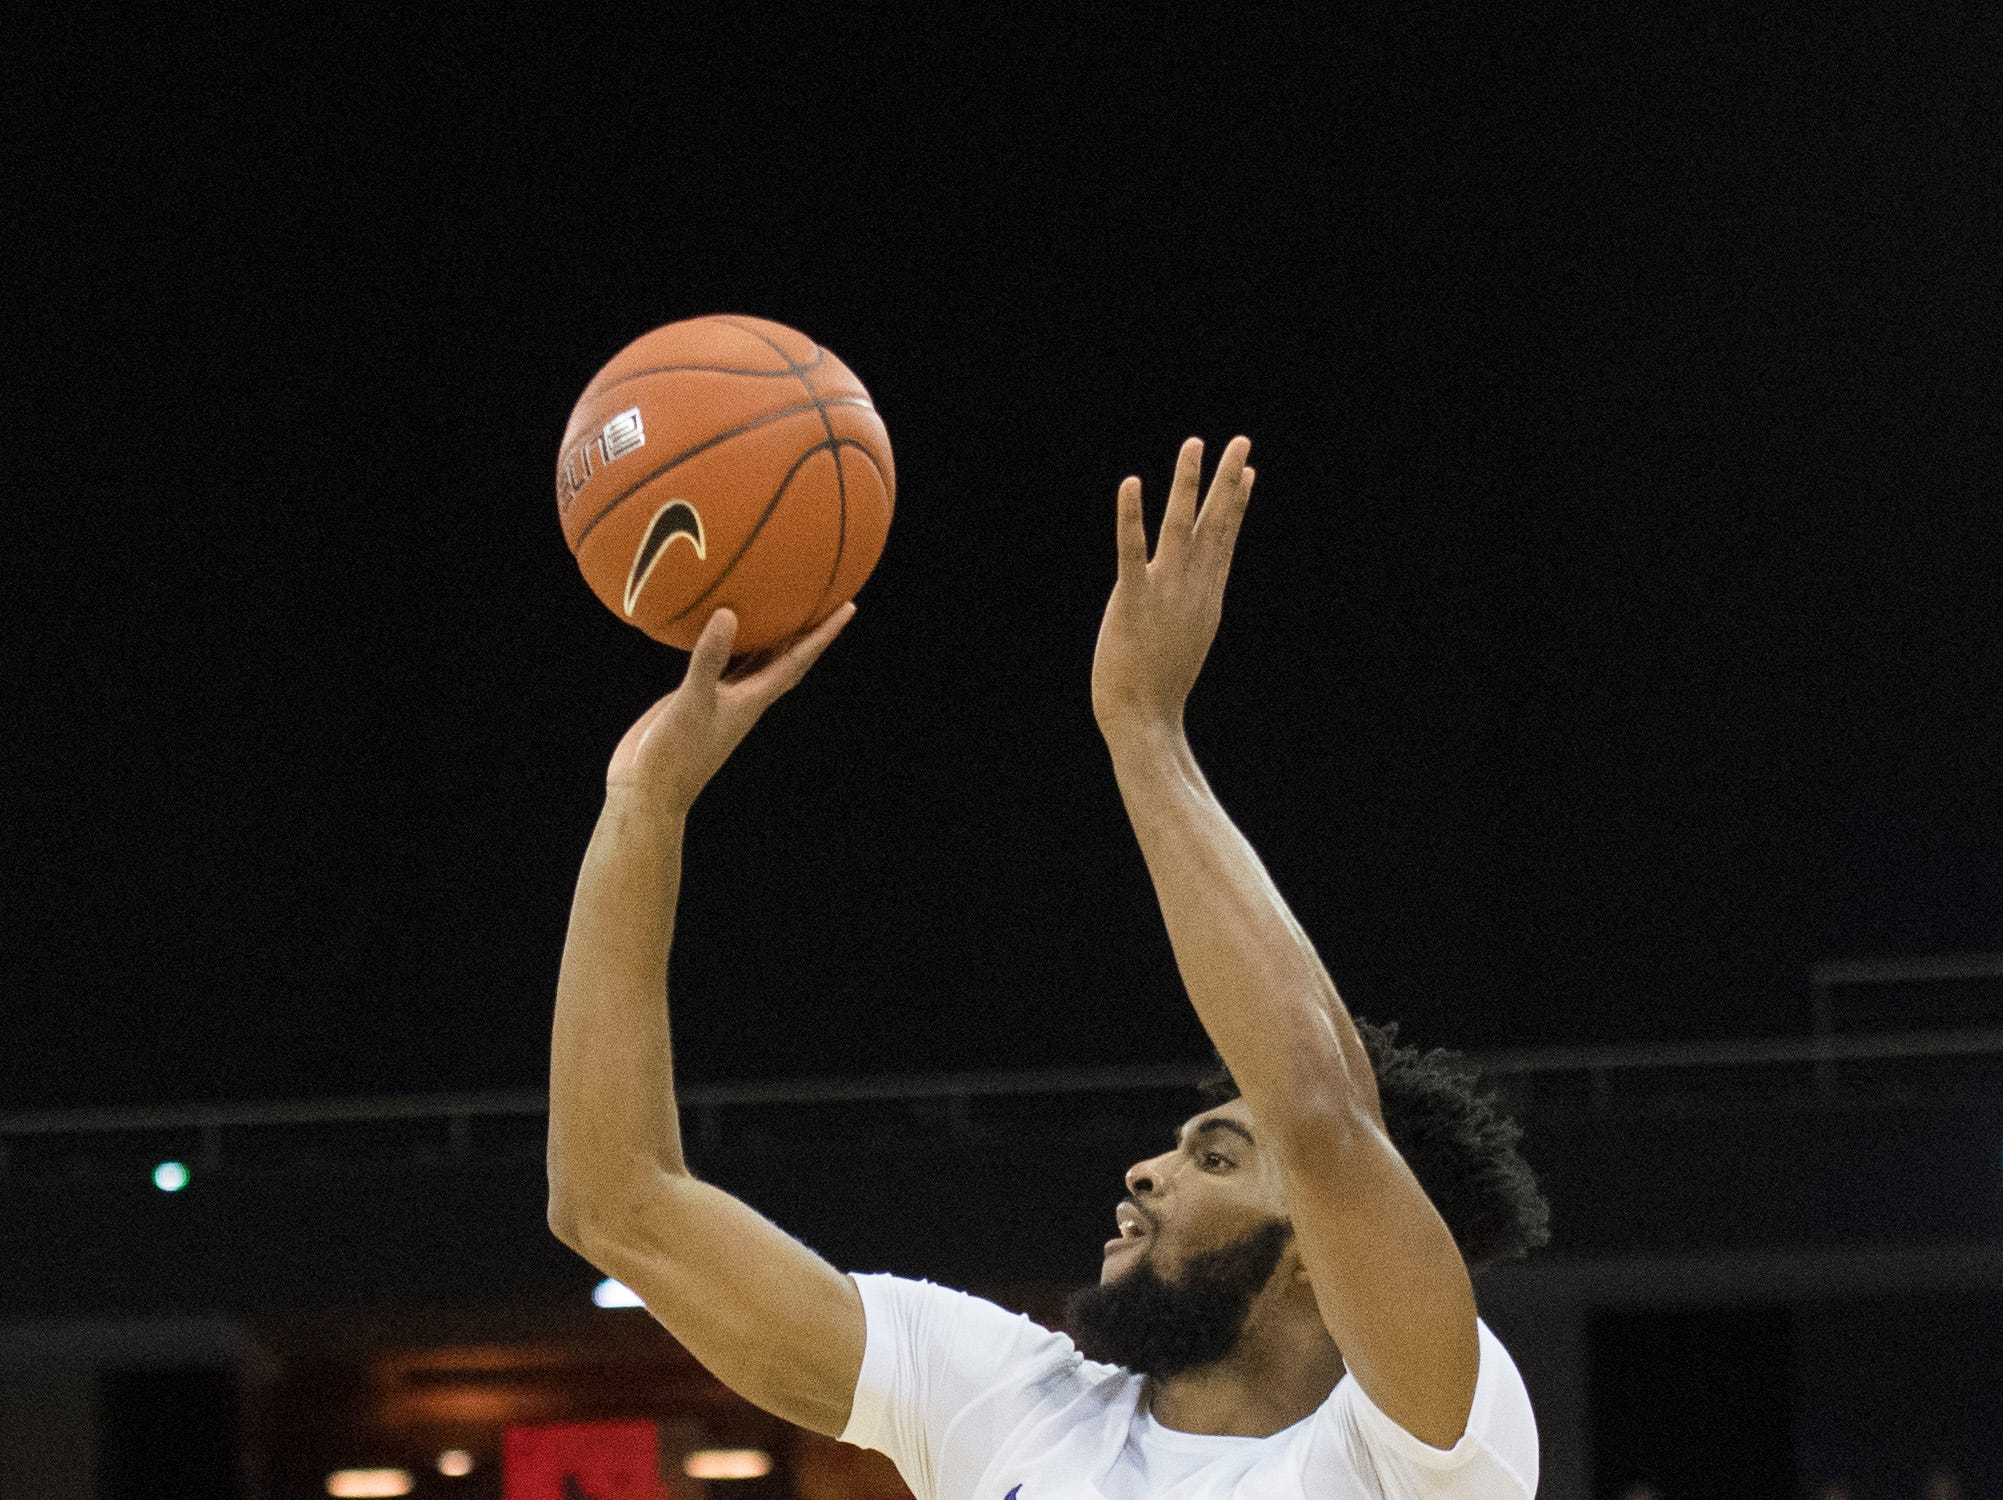 UE's K.J. Riley (33) takes a shot during the UE vs Wyoming game at the Ford Center Wednesday, Nov. 28, 2018. UE won 86-76.